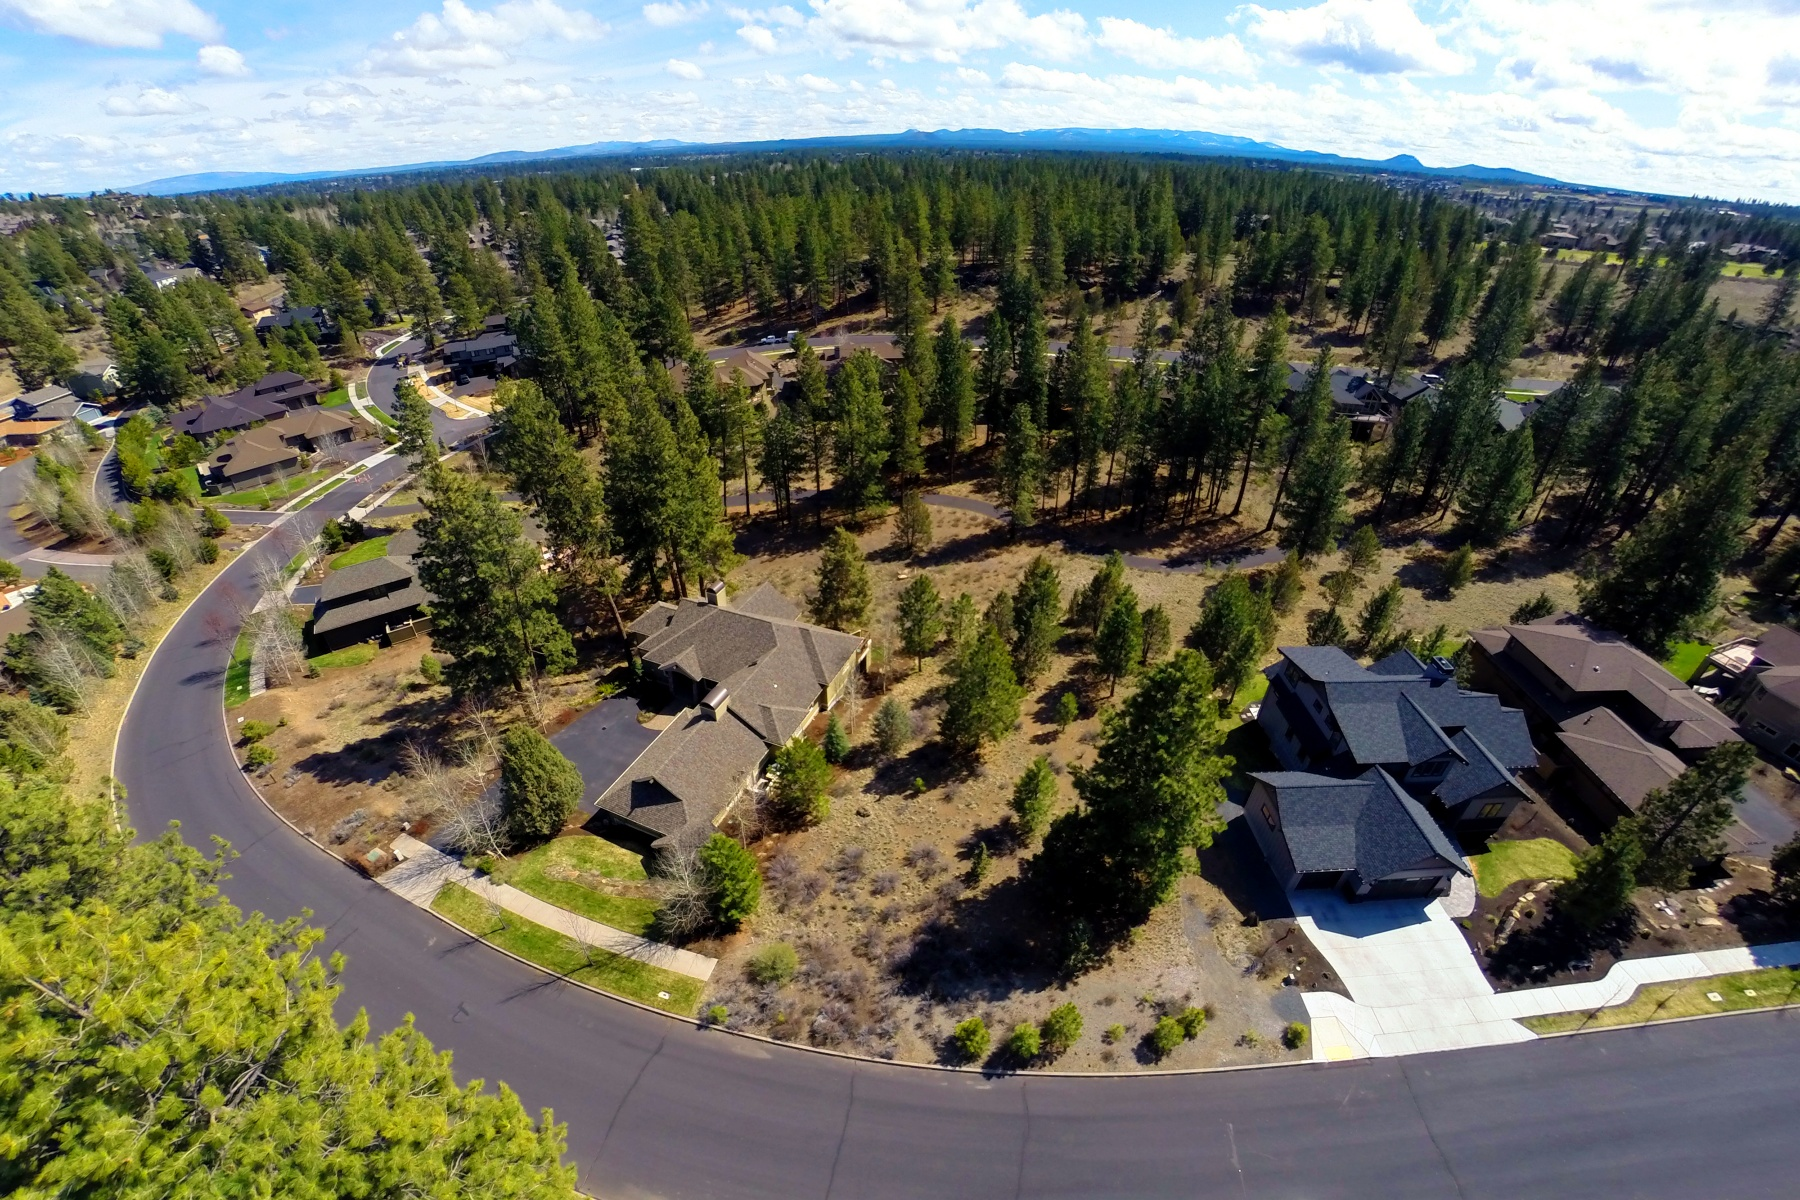 Land for Sale at The Reserves at Broken Top 2831 NW Perlette Ln Bend, Oregon, 97703 United States